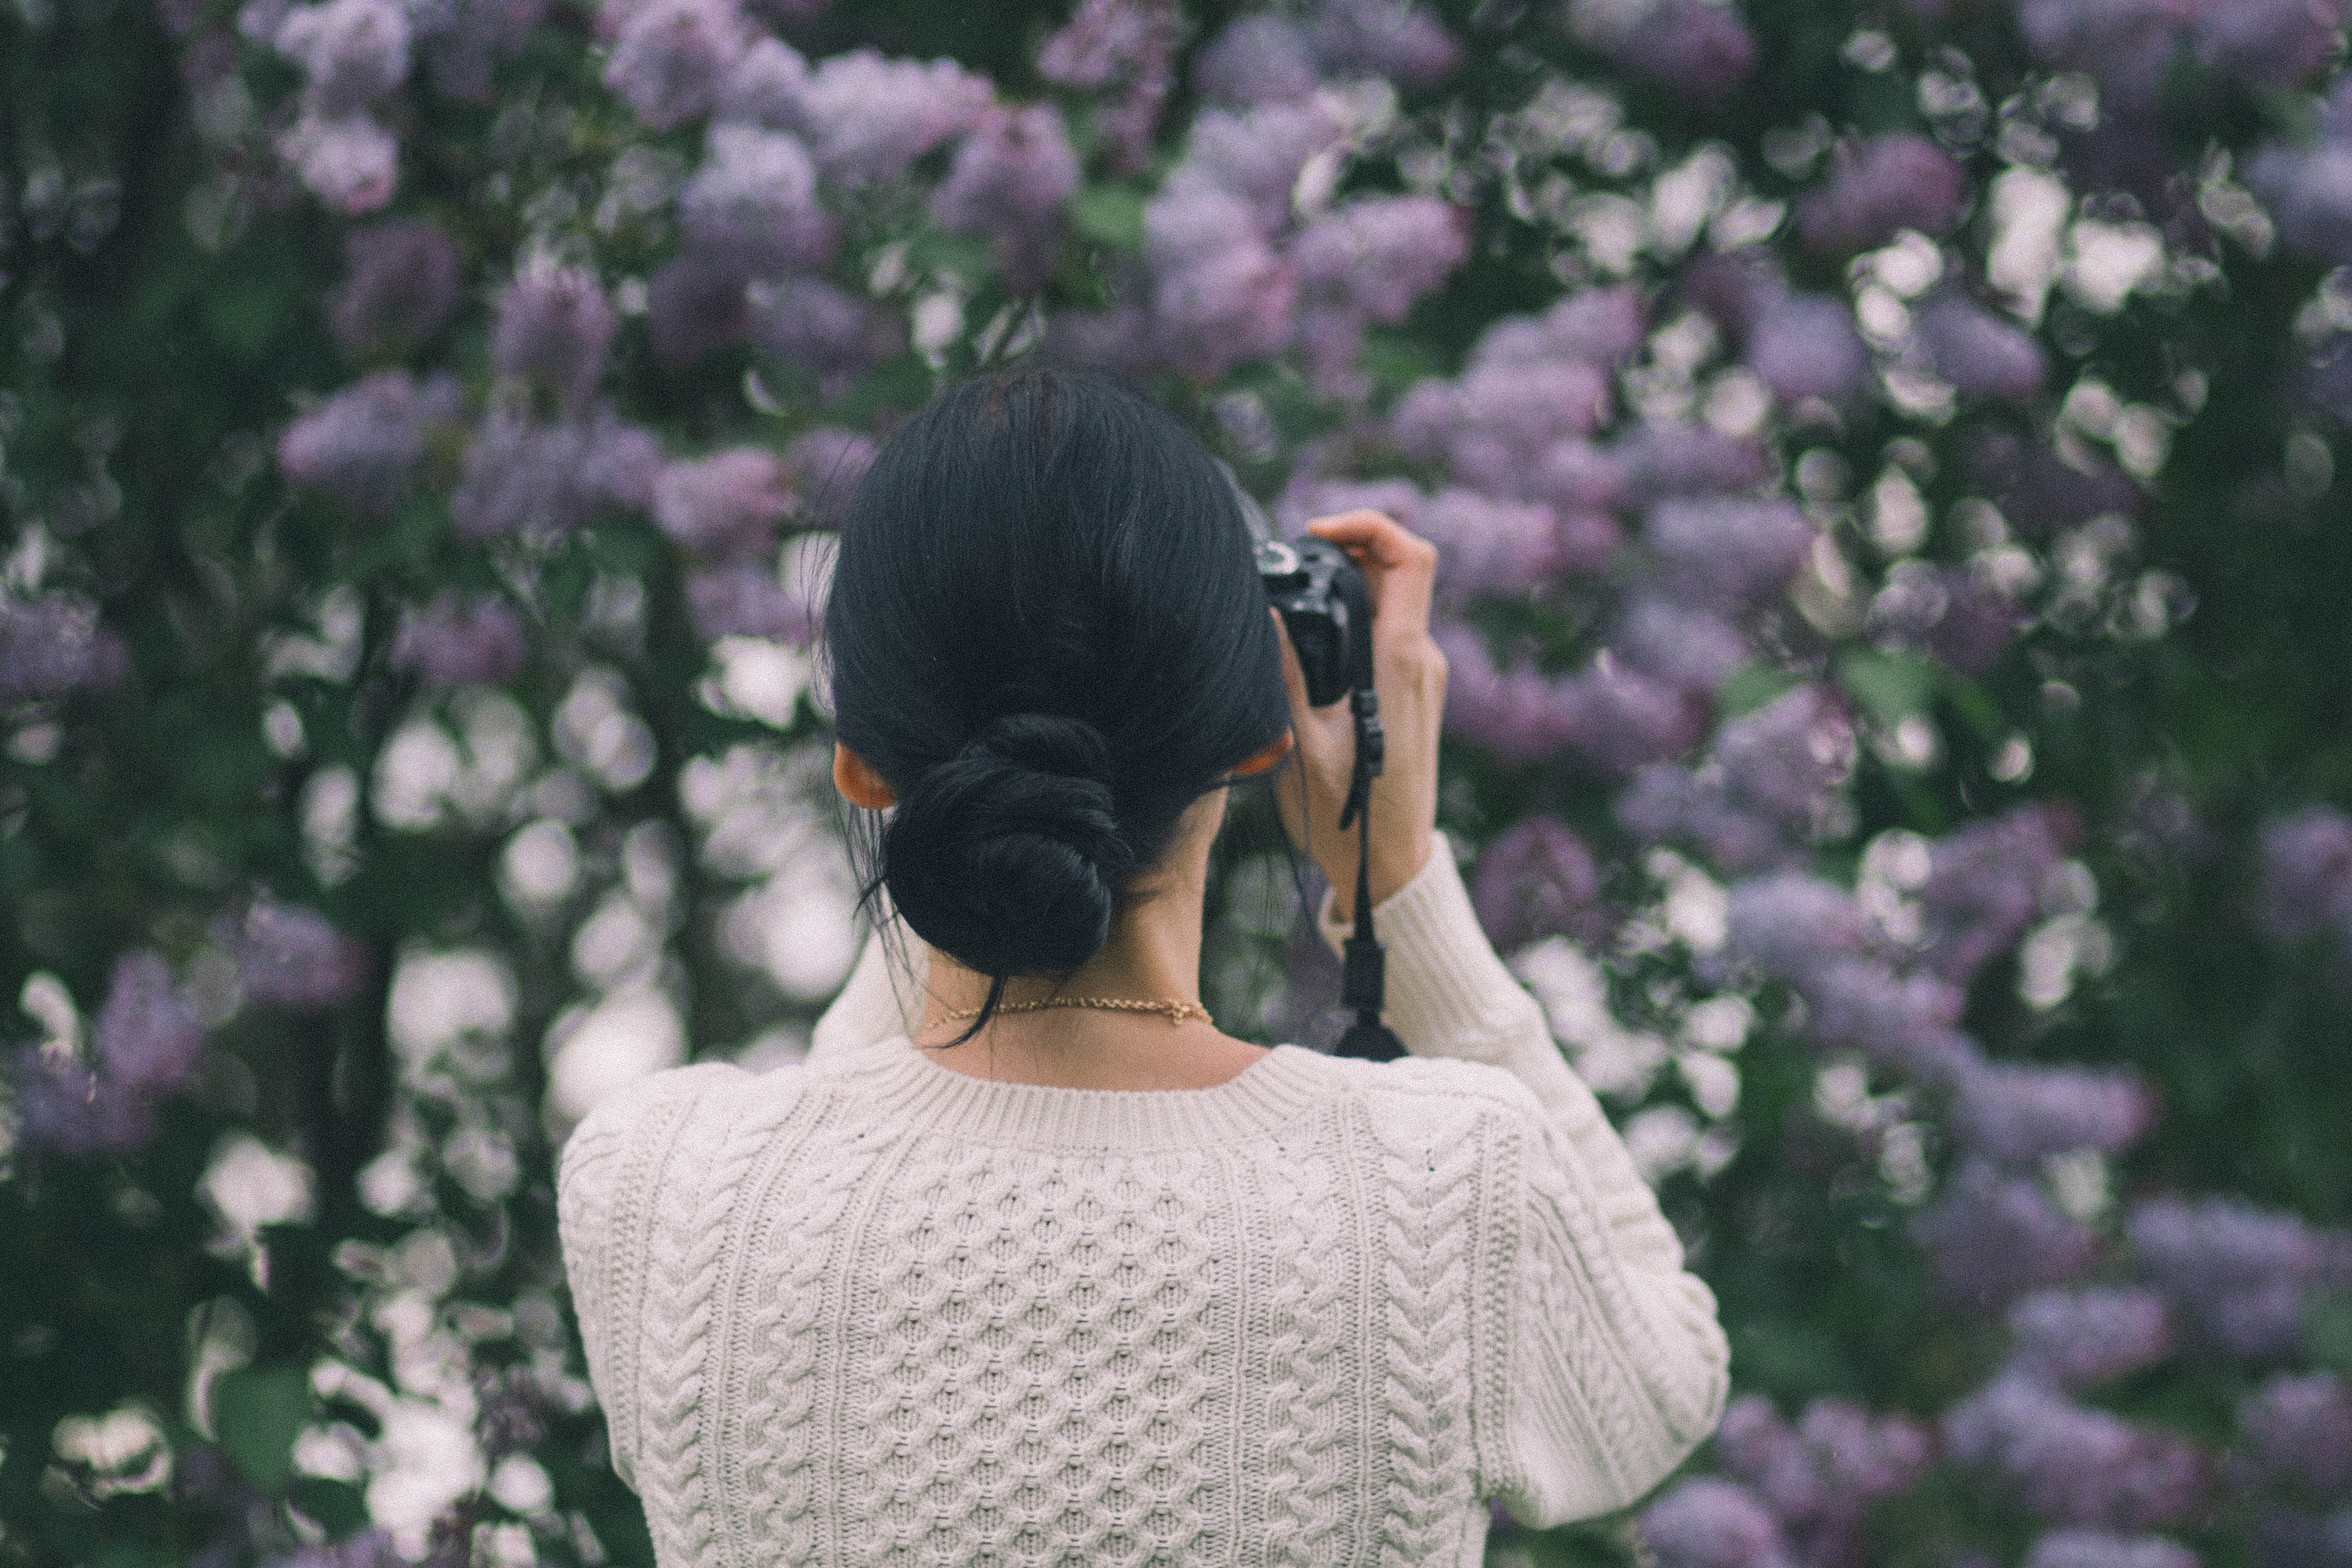 Woman holding camera taking photos of flowers